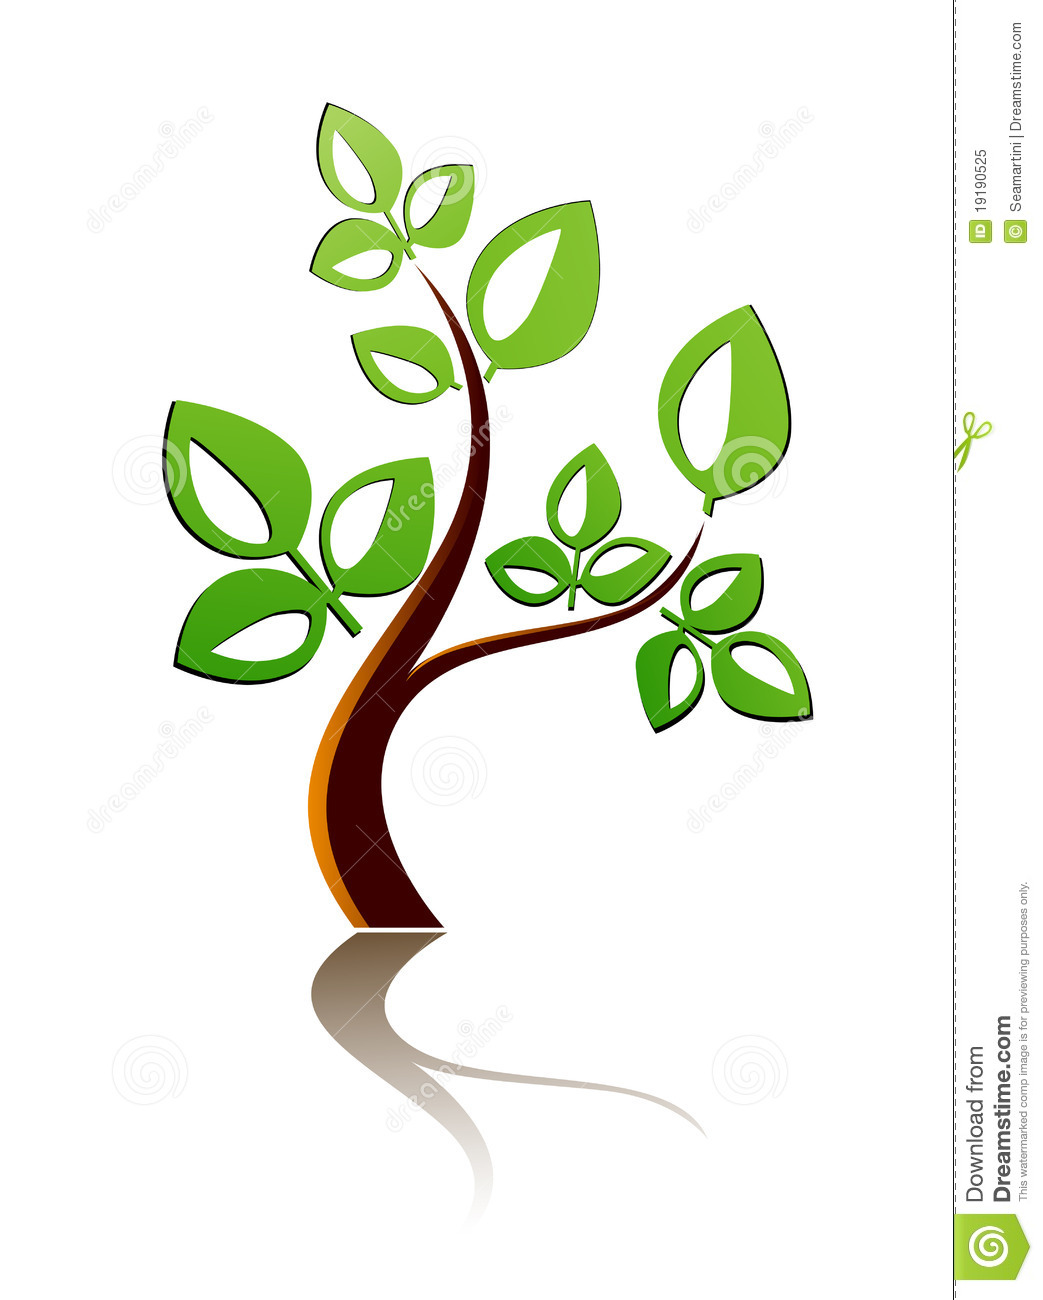 Tree Icon Royalty Free Stock Photo   Image: 19190525 image #1531